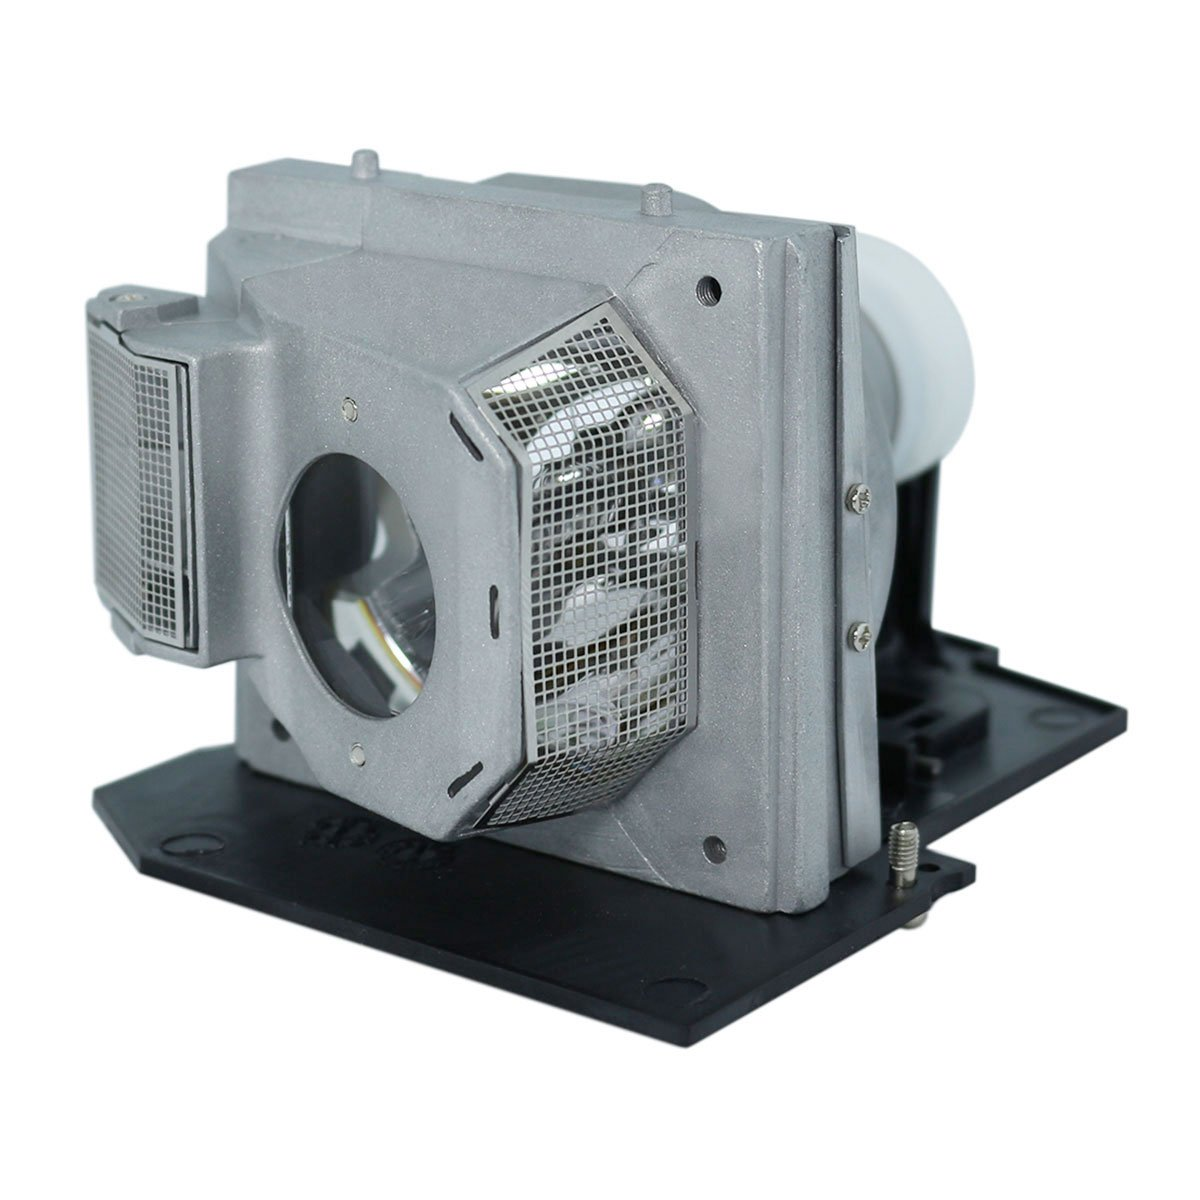 オリジナルフィリップスプロジェクター交換用ランプ Optoma HT1080用 Platinum (Brighter/Durable) Platinum (Brighter/Durable) Lamp with Housing B07L2BQ8KQ